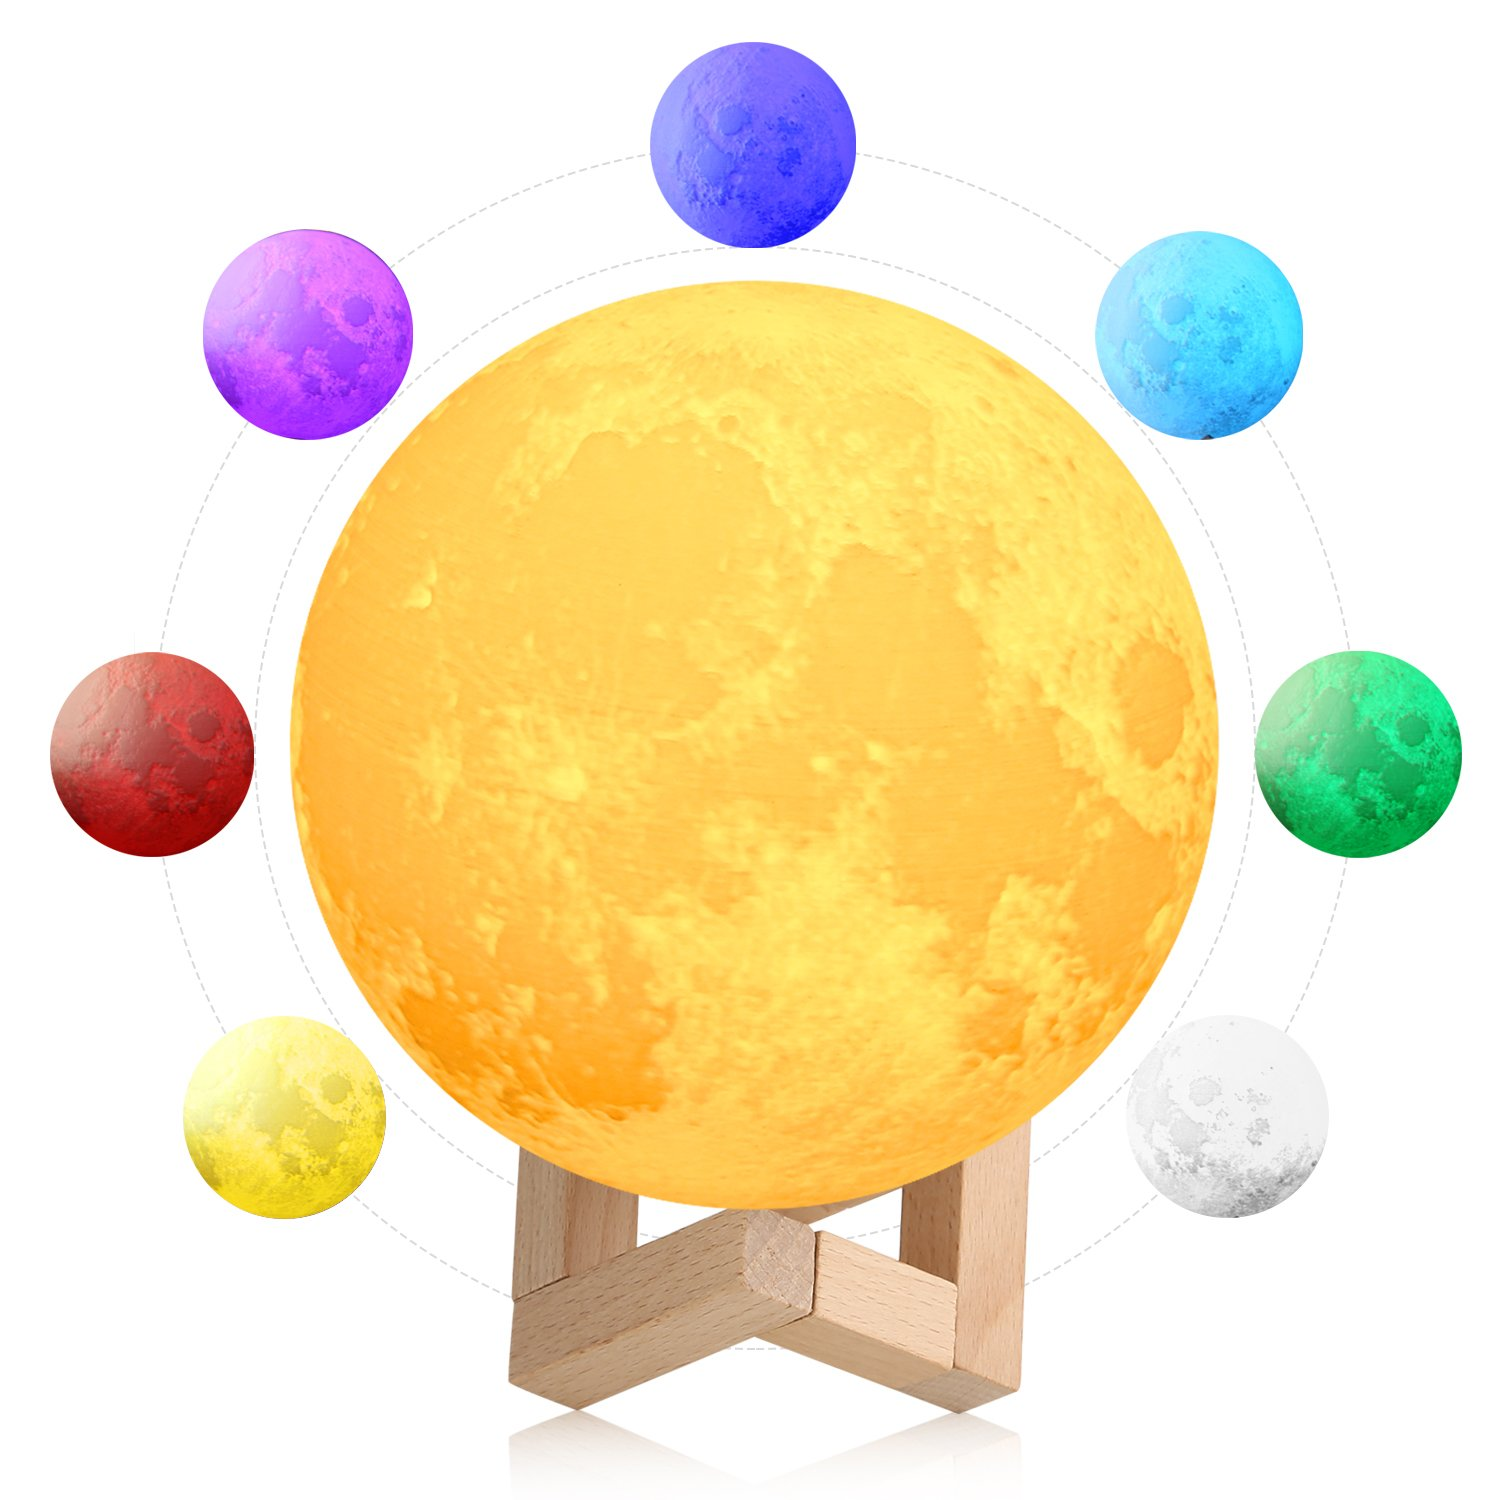 3D Space Moon Lamp 5.9in with Stand, 3D Printing Moon Night Light with Stand Touch Control & Color Changing Decorative Light for Kids Room, Bedroom 5.9 in